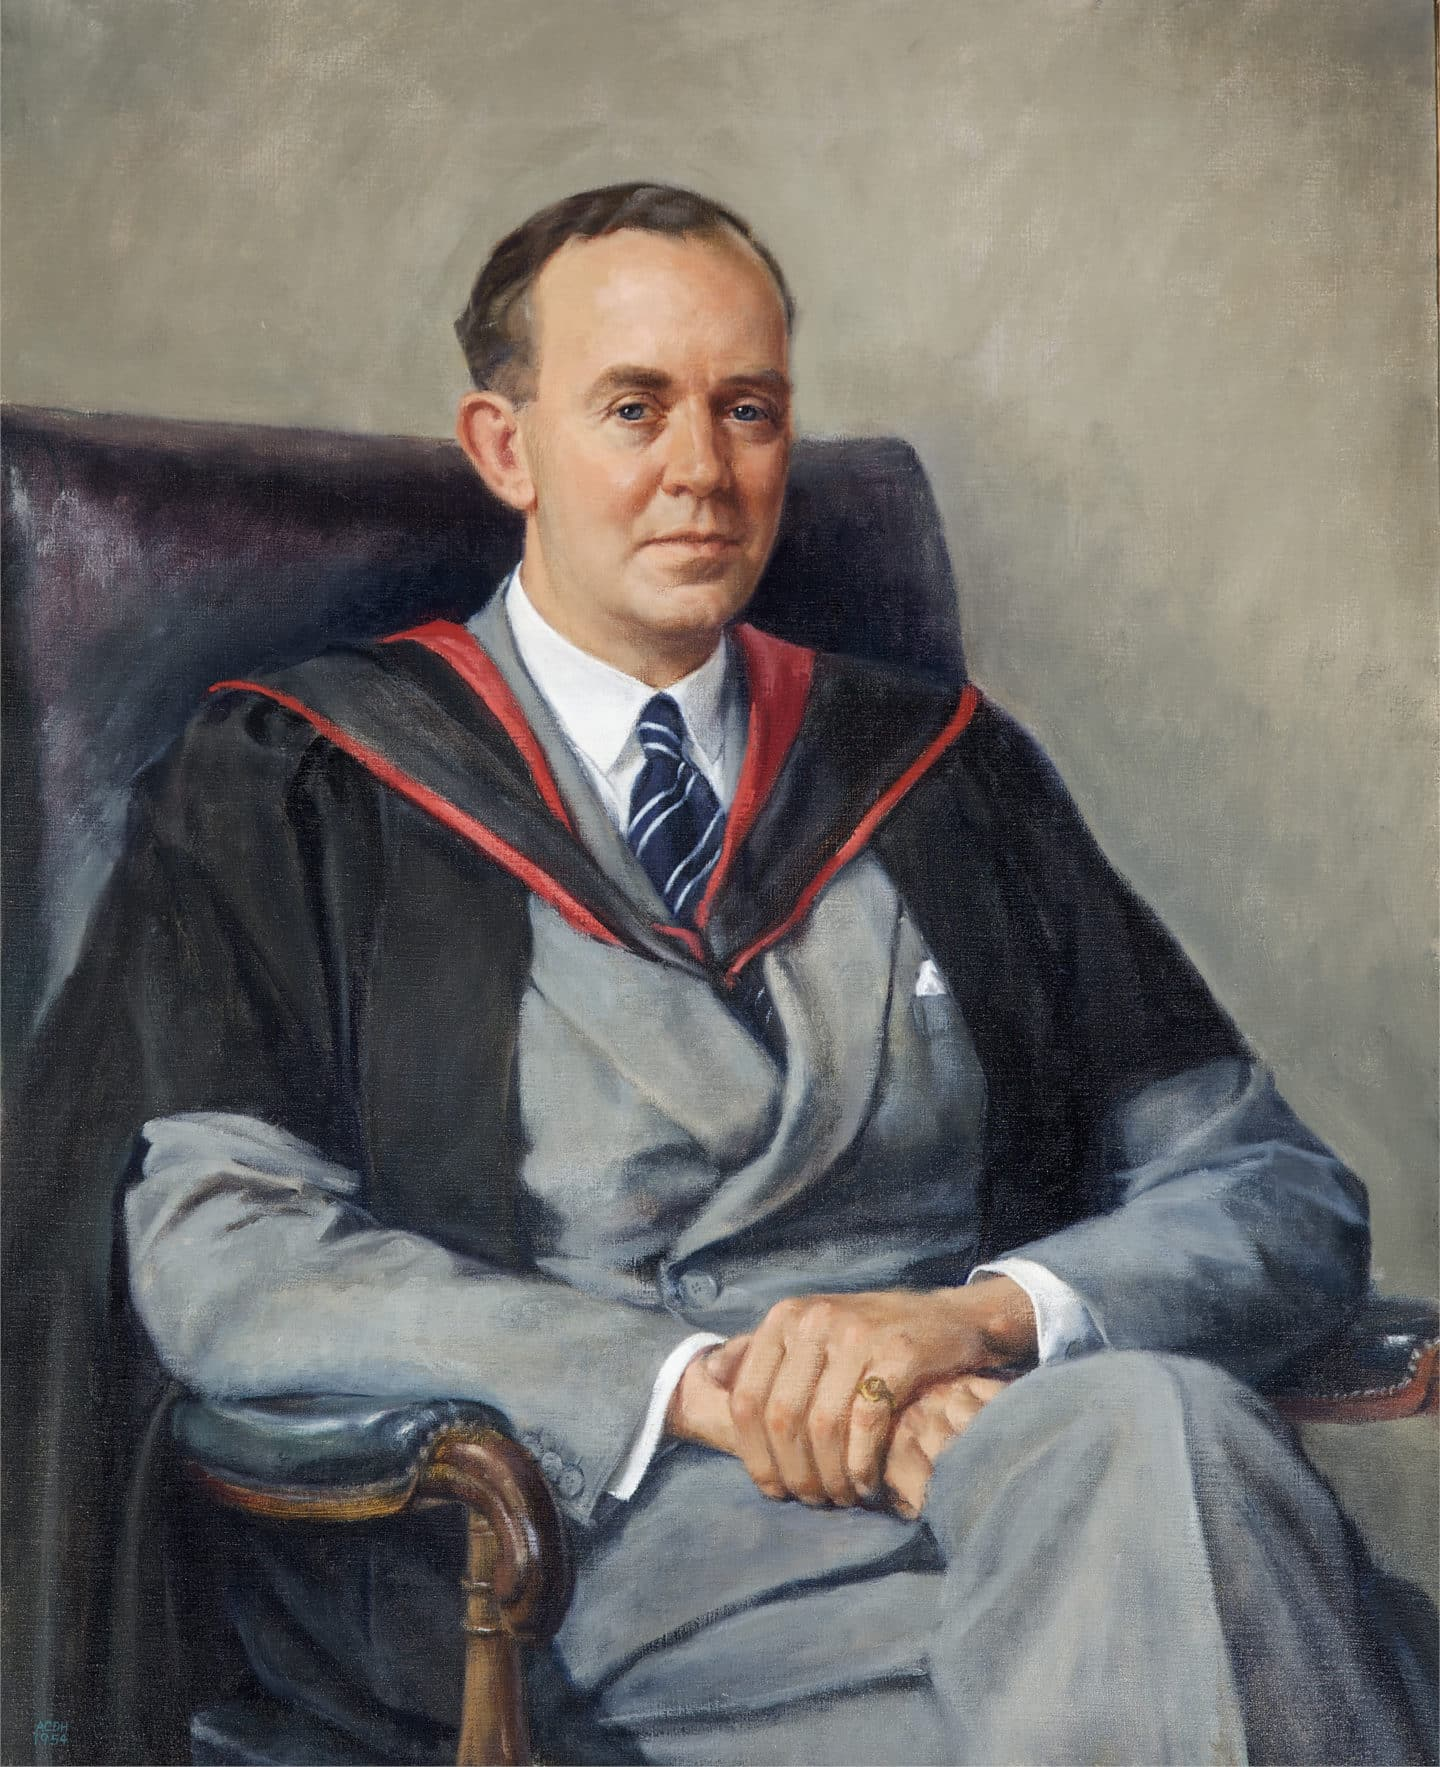 Portait of Keith Murray in Hall